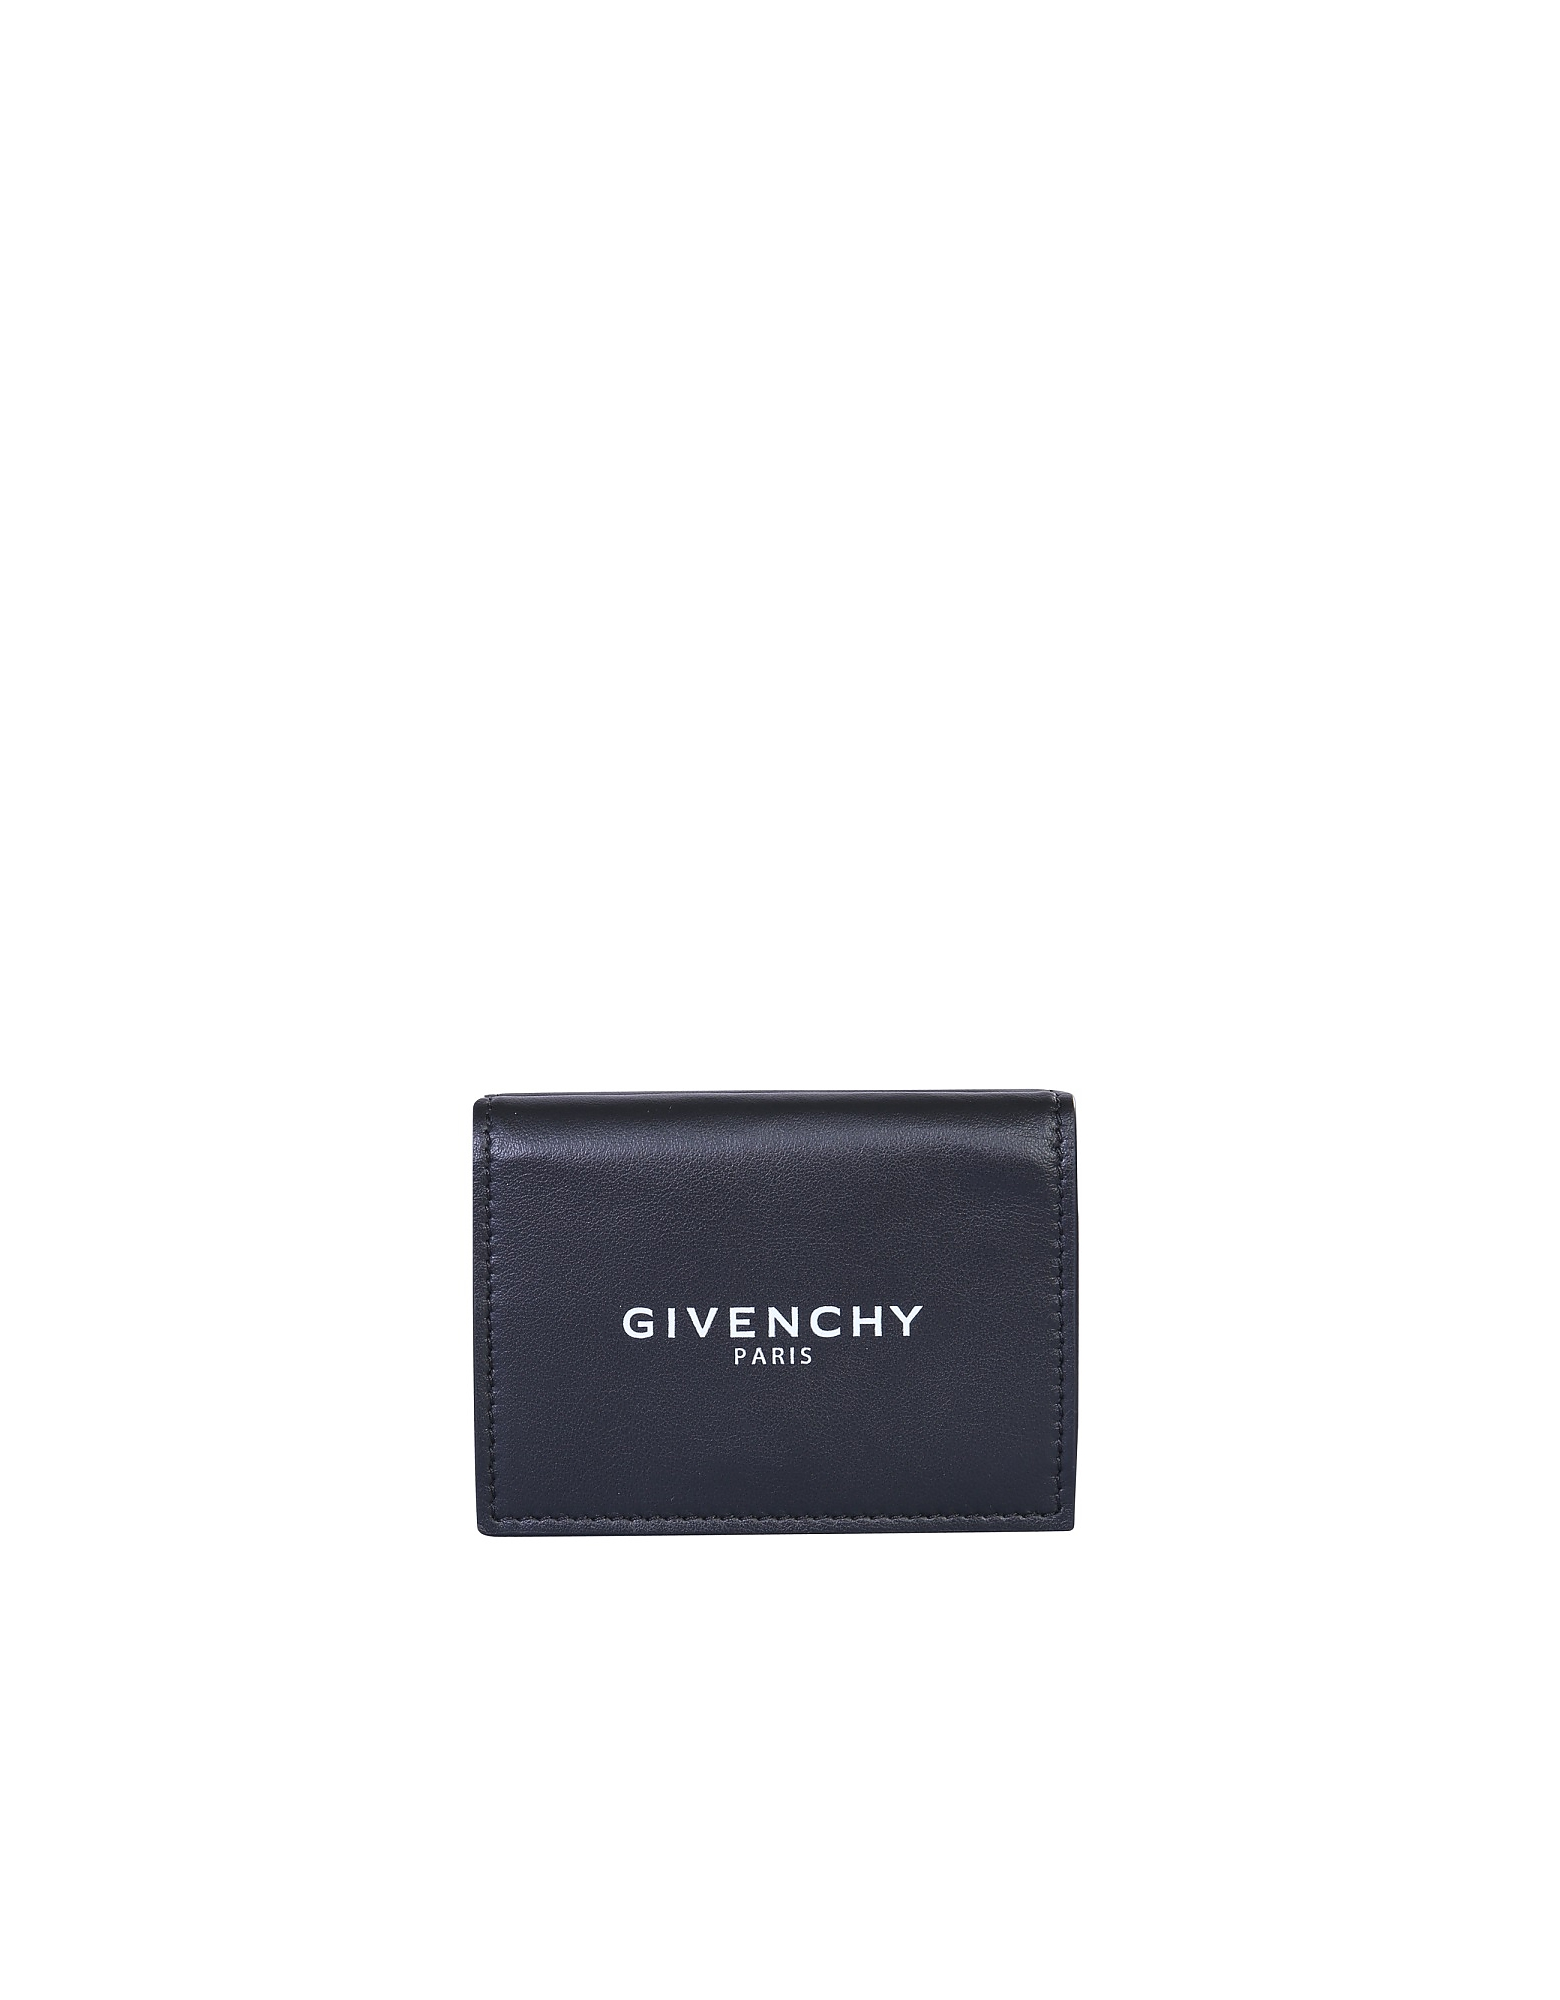 Givenchy Designer Men's Bags, Wallet With Logo